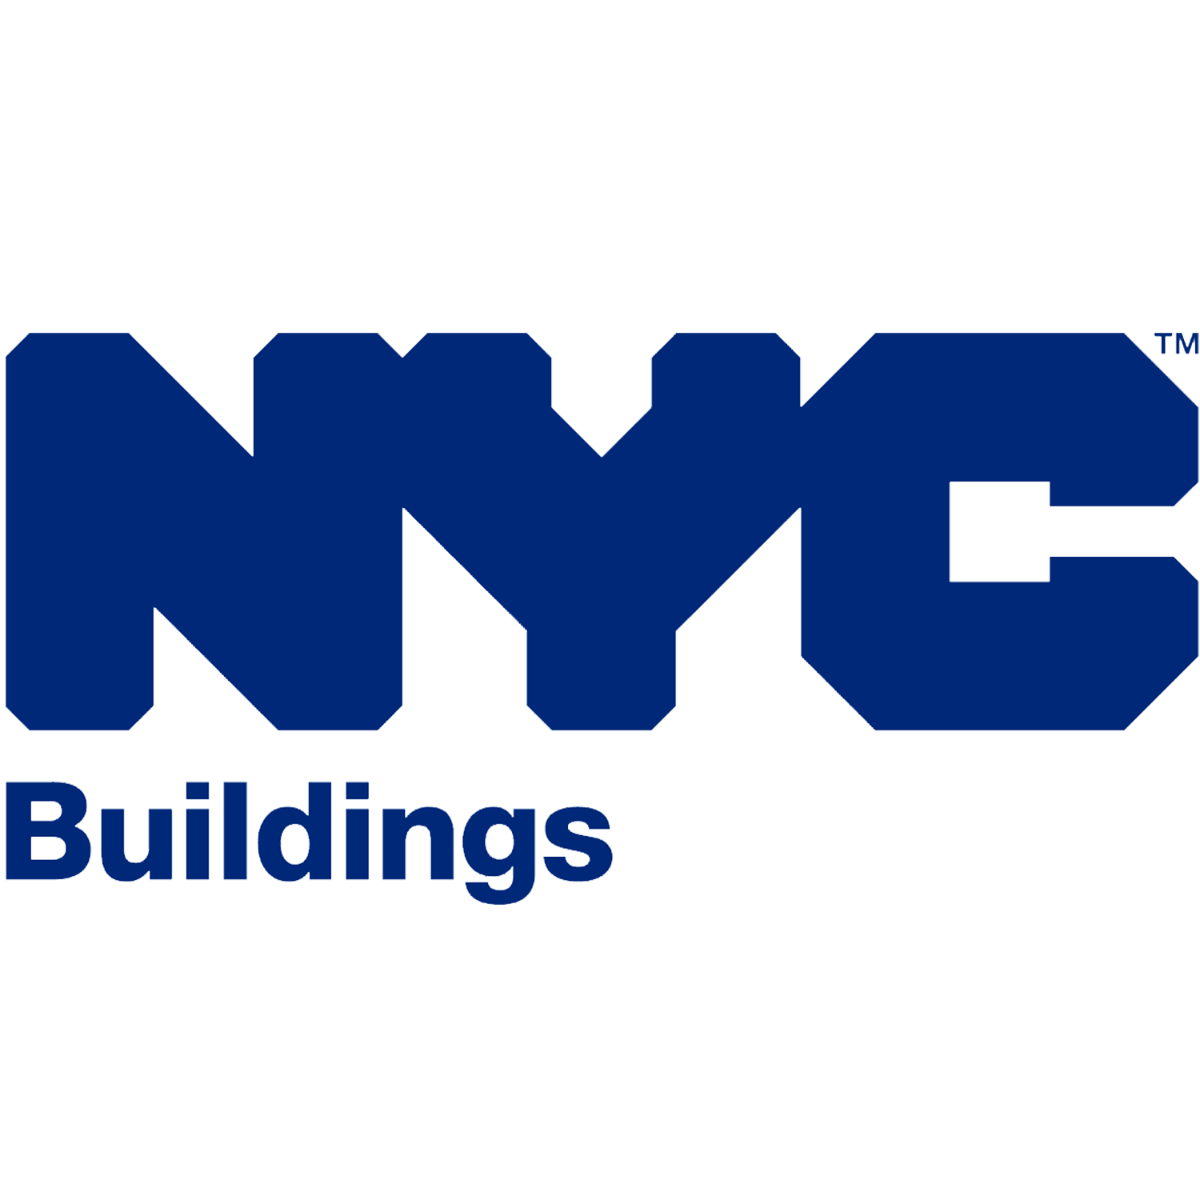 City of New York Department of Buildings